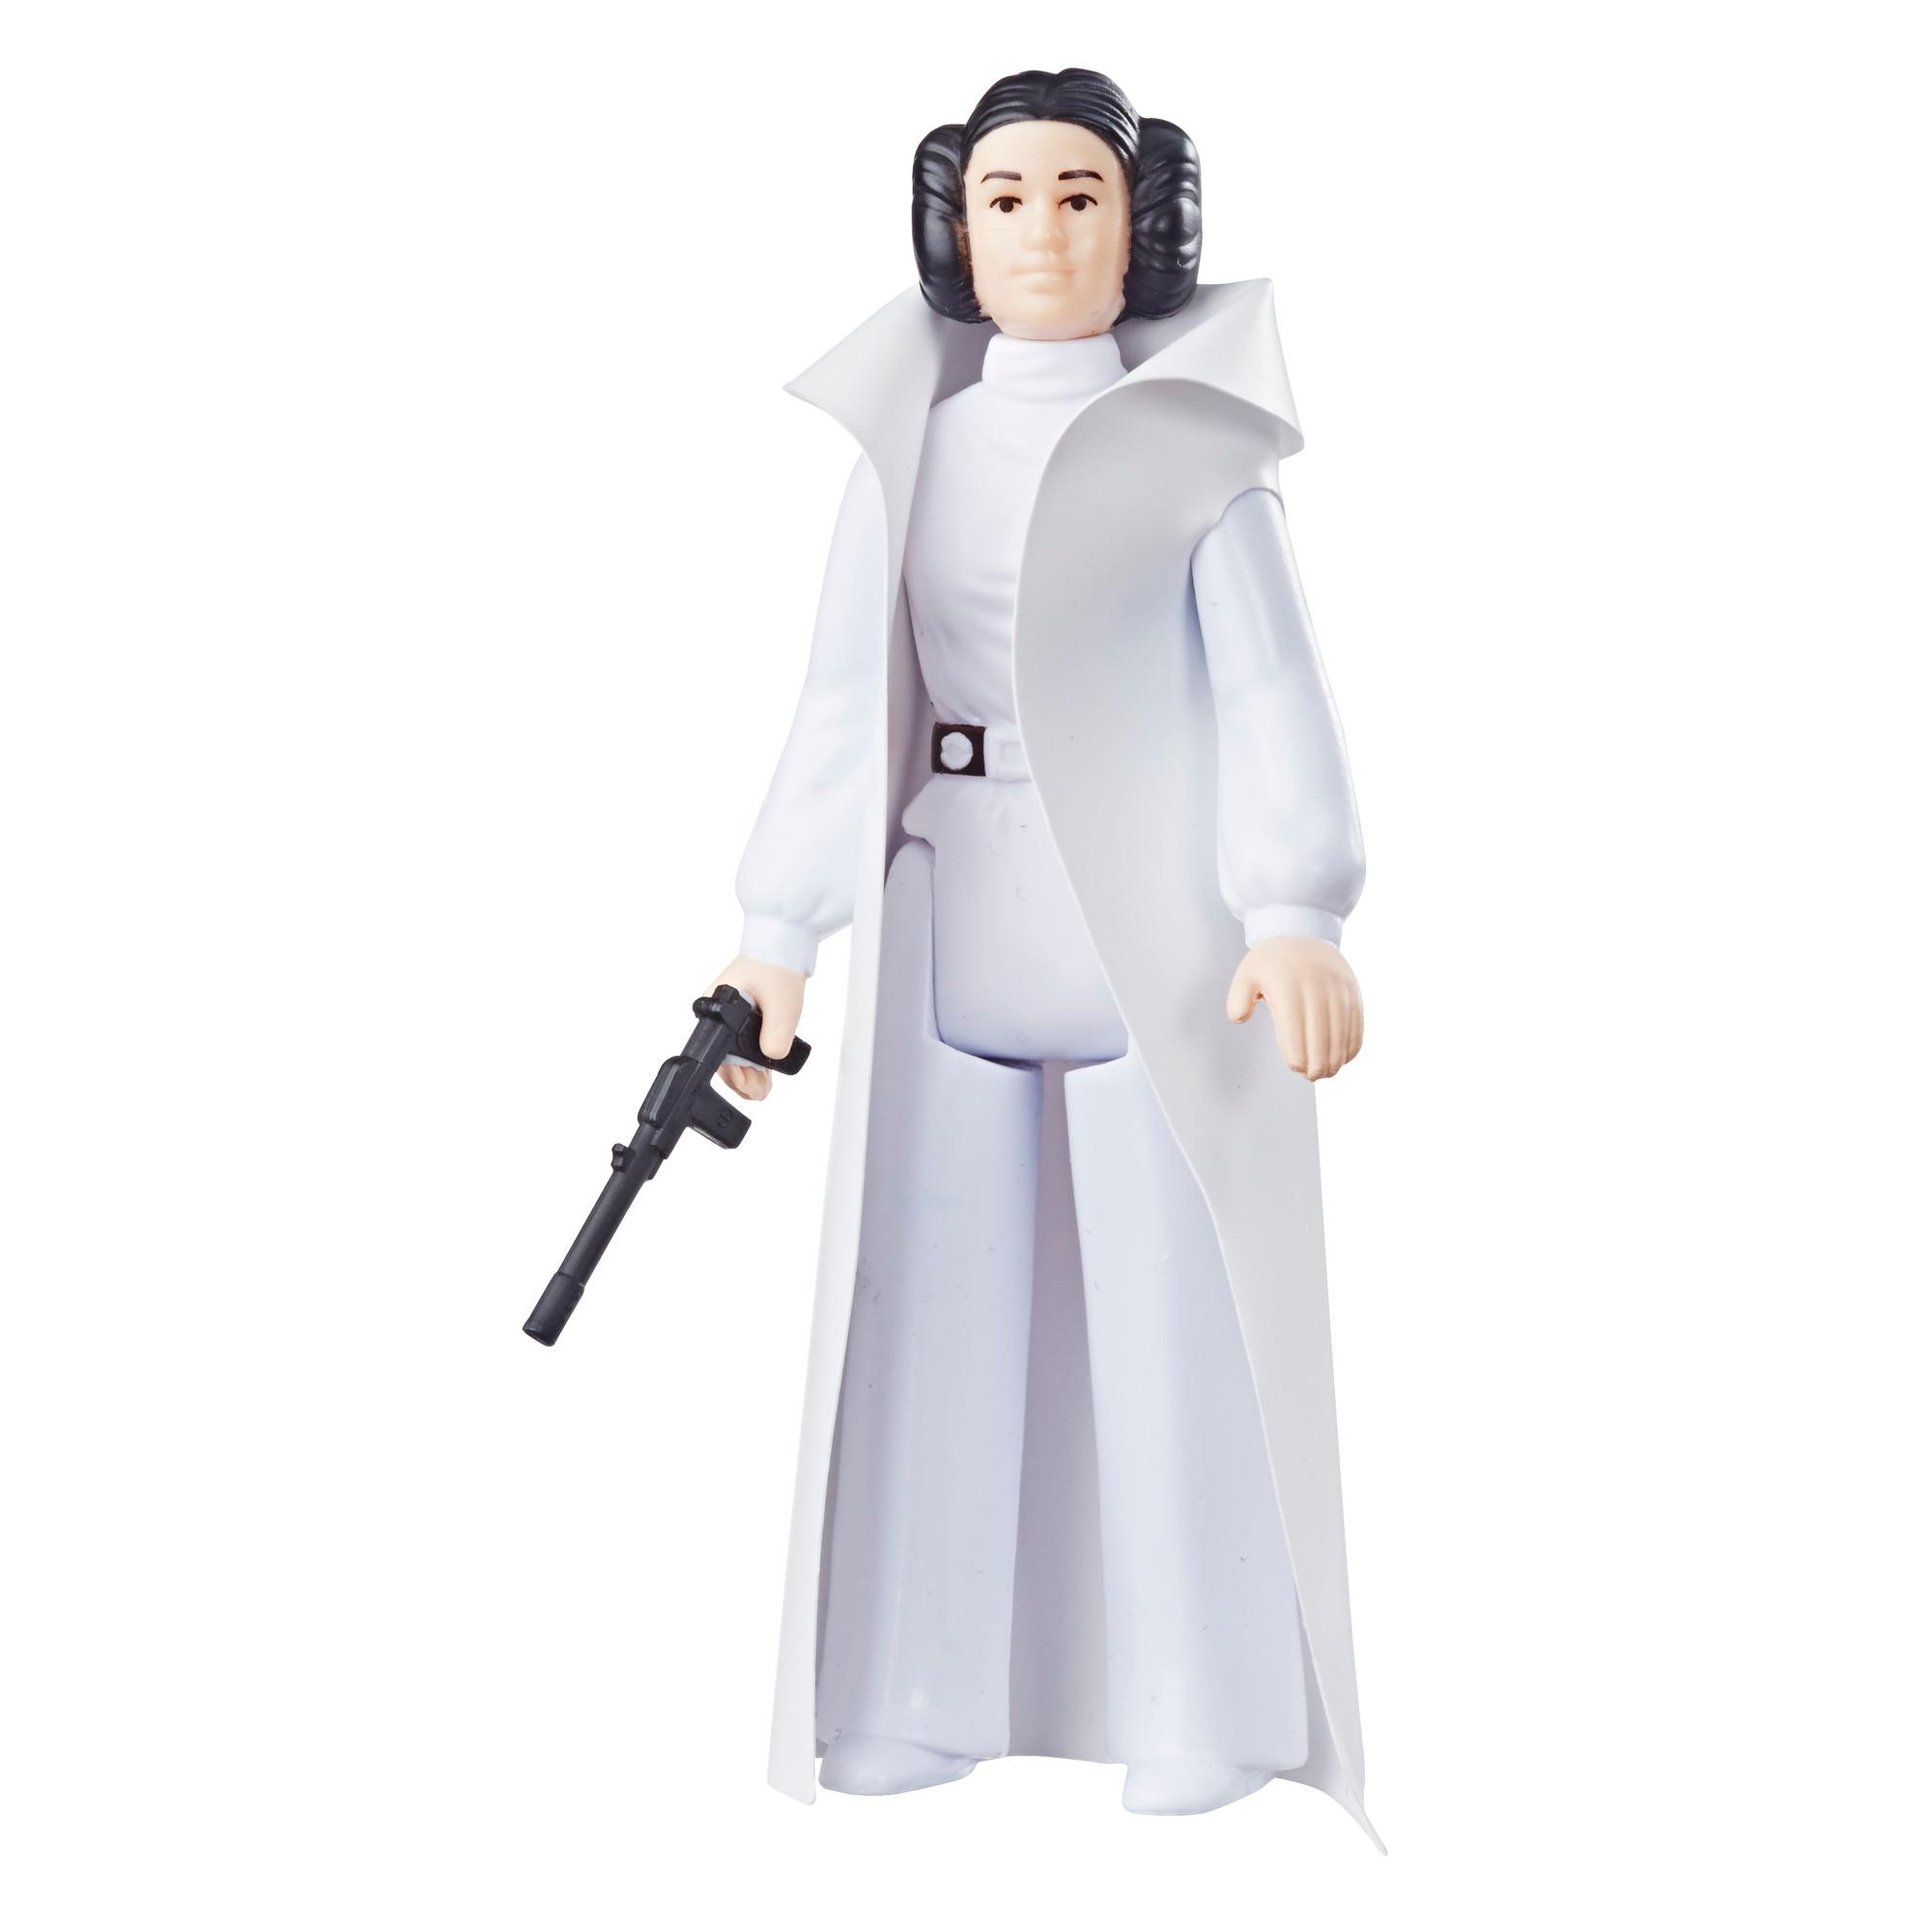 Star Wars Retro Collection Episode IV: A New Hope Princess Leia 3.75-Inch-Scale Action Figure Toy – Inspired by Classic 1970s-Sculpt and Packaging Collectible Star Wars Figure